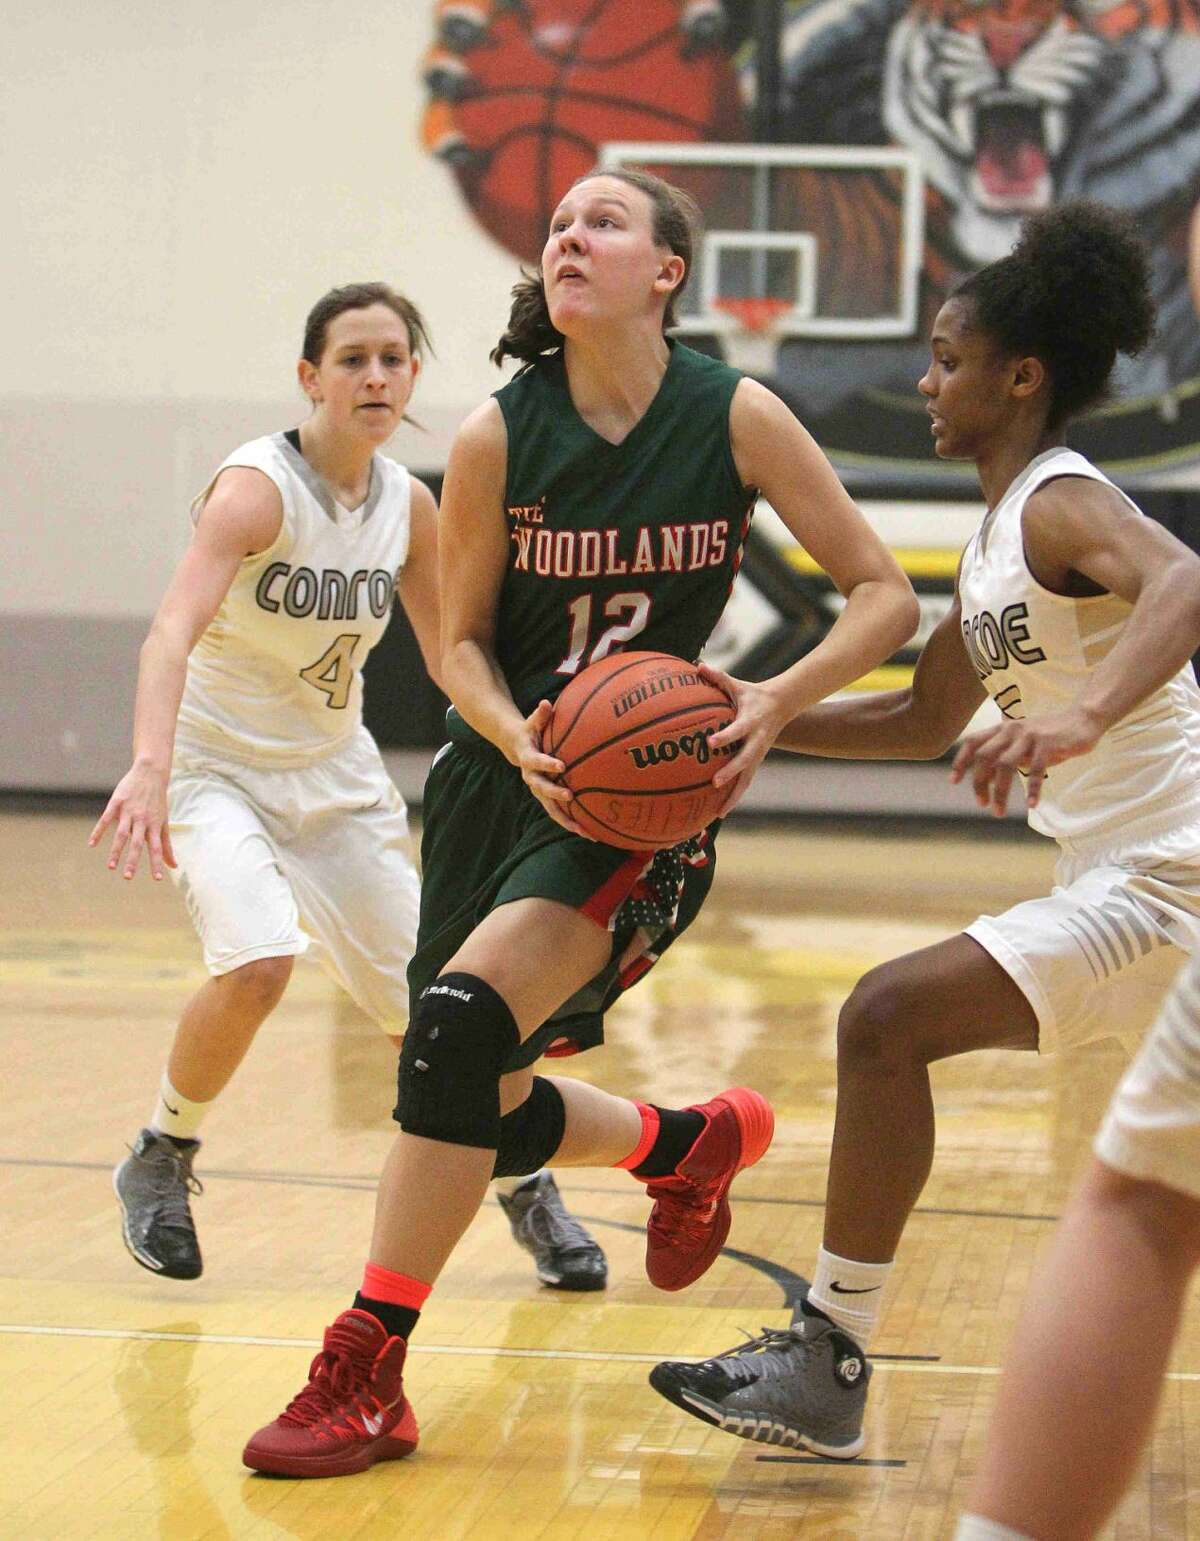 The Woodlands guard Amber Terry (12) has been one of the early standouts for the Lady Highlanders so far.